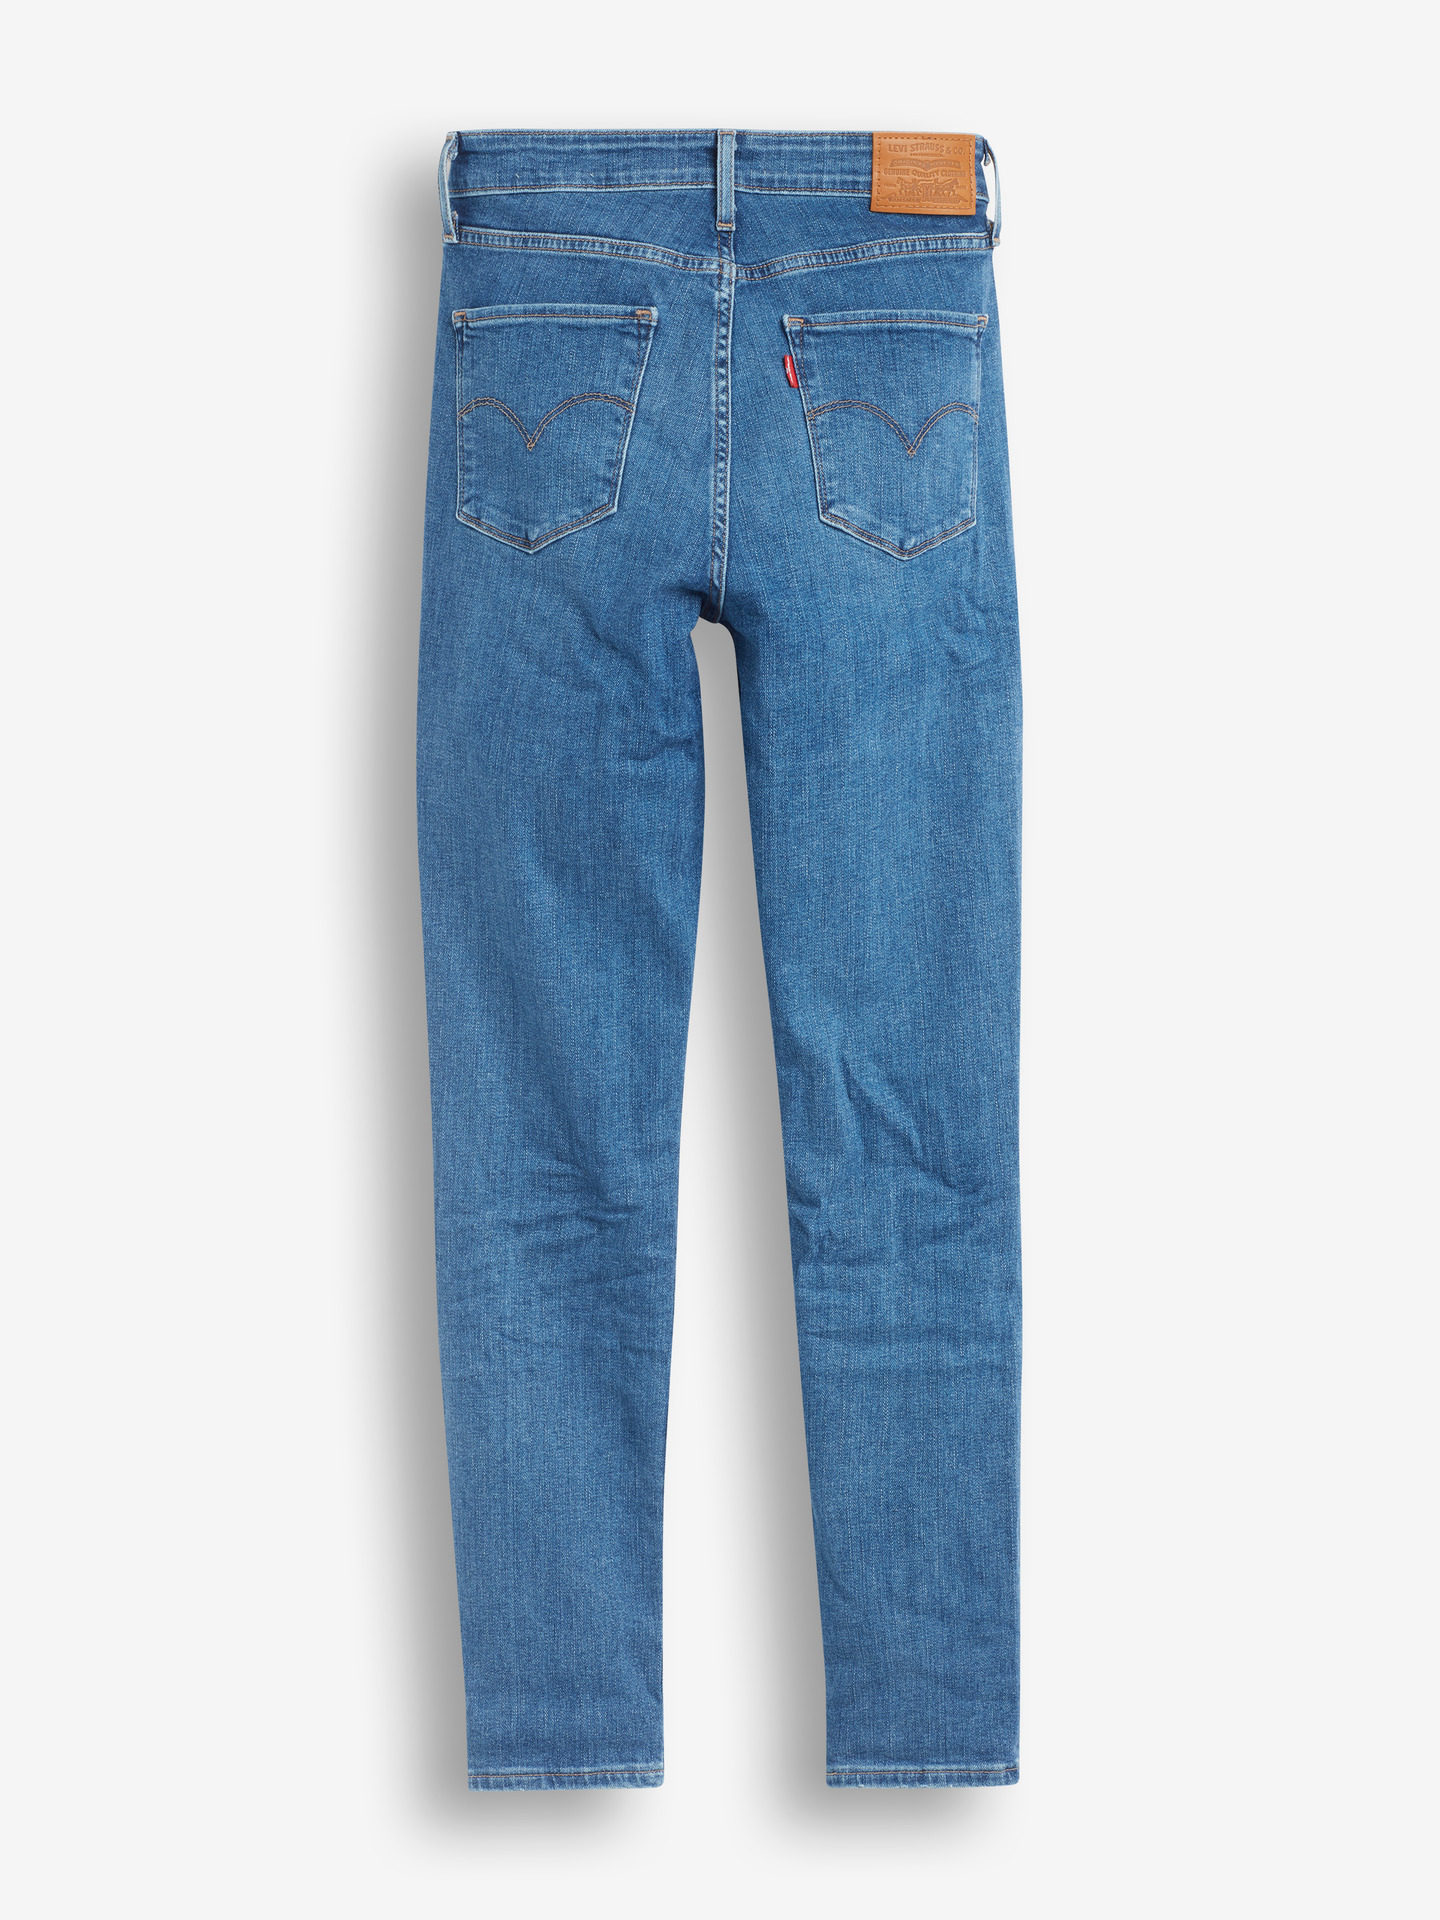 721™ High Rise Skinny Jeans Levi's® (6)